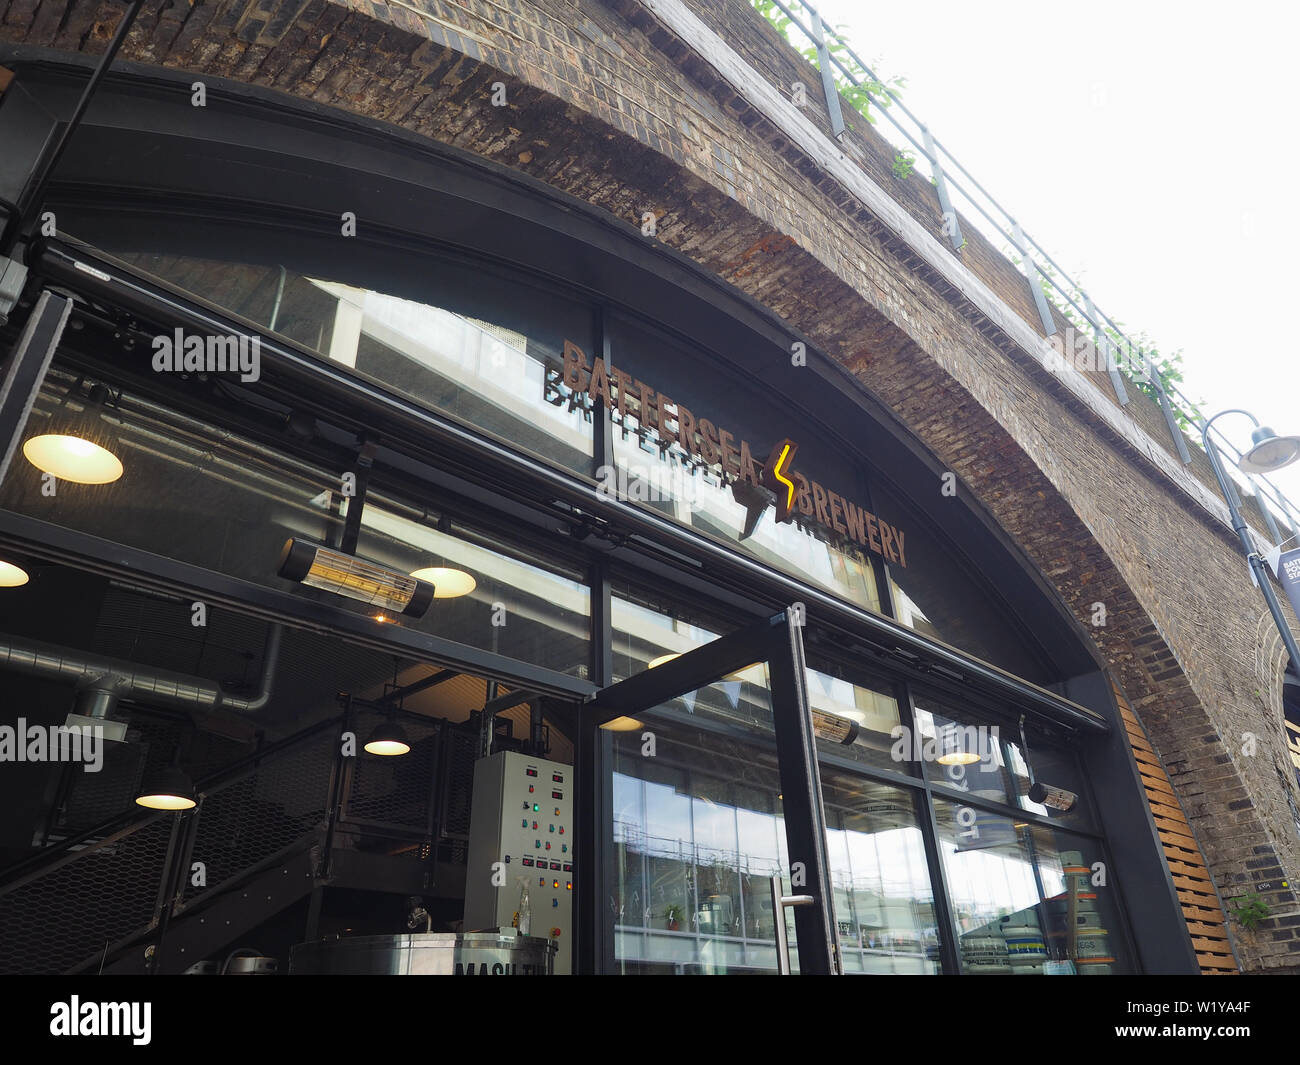 LONDON, UK - CIRCA JUNE 2019: Battersea Brewery at Circus West village at Battersea Power Station - Stock Image